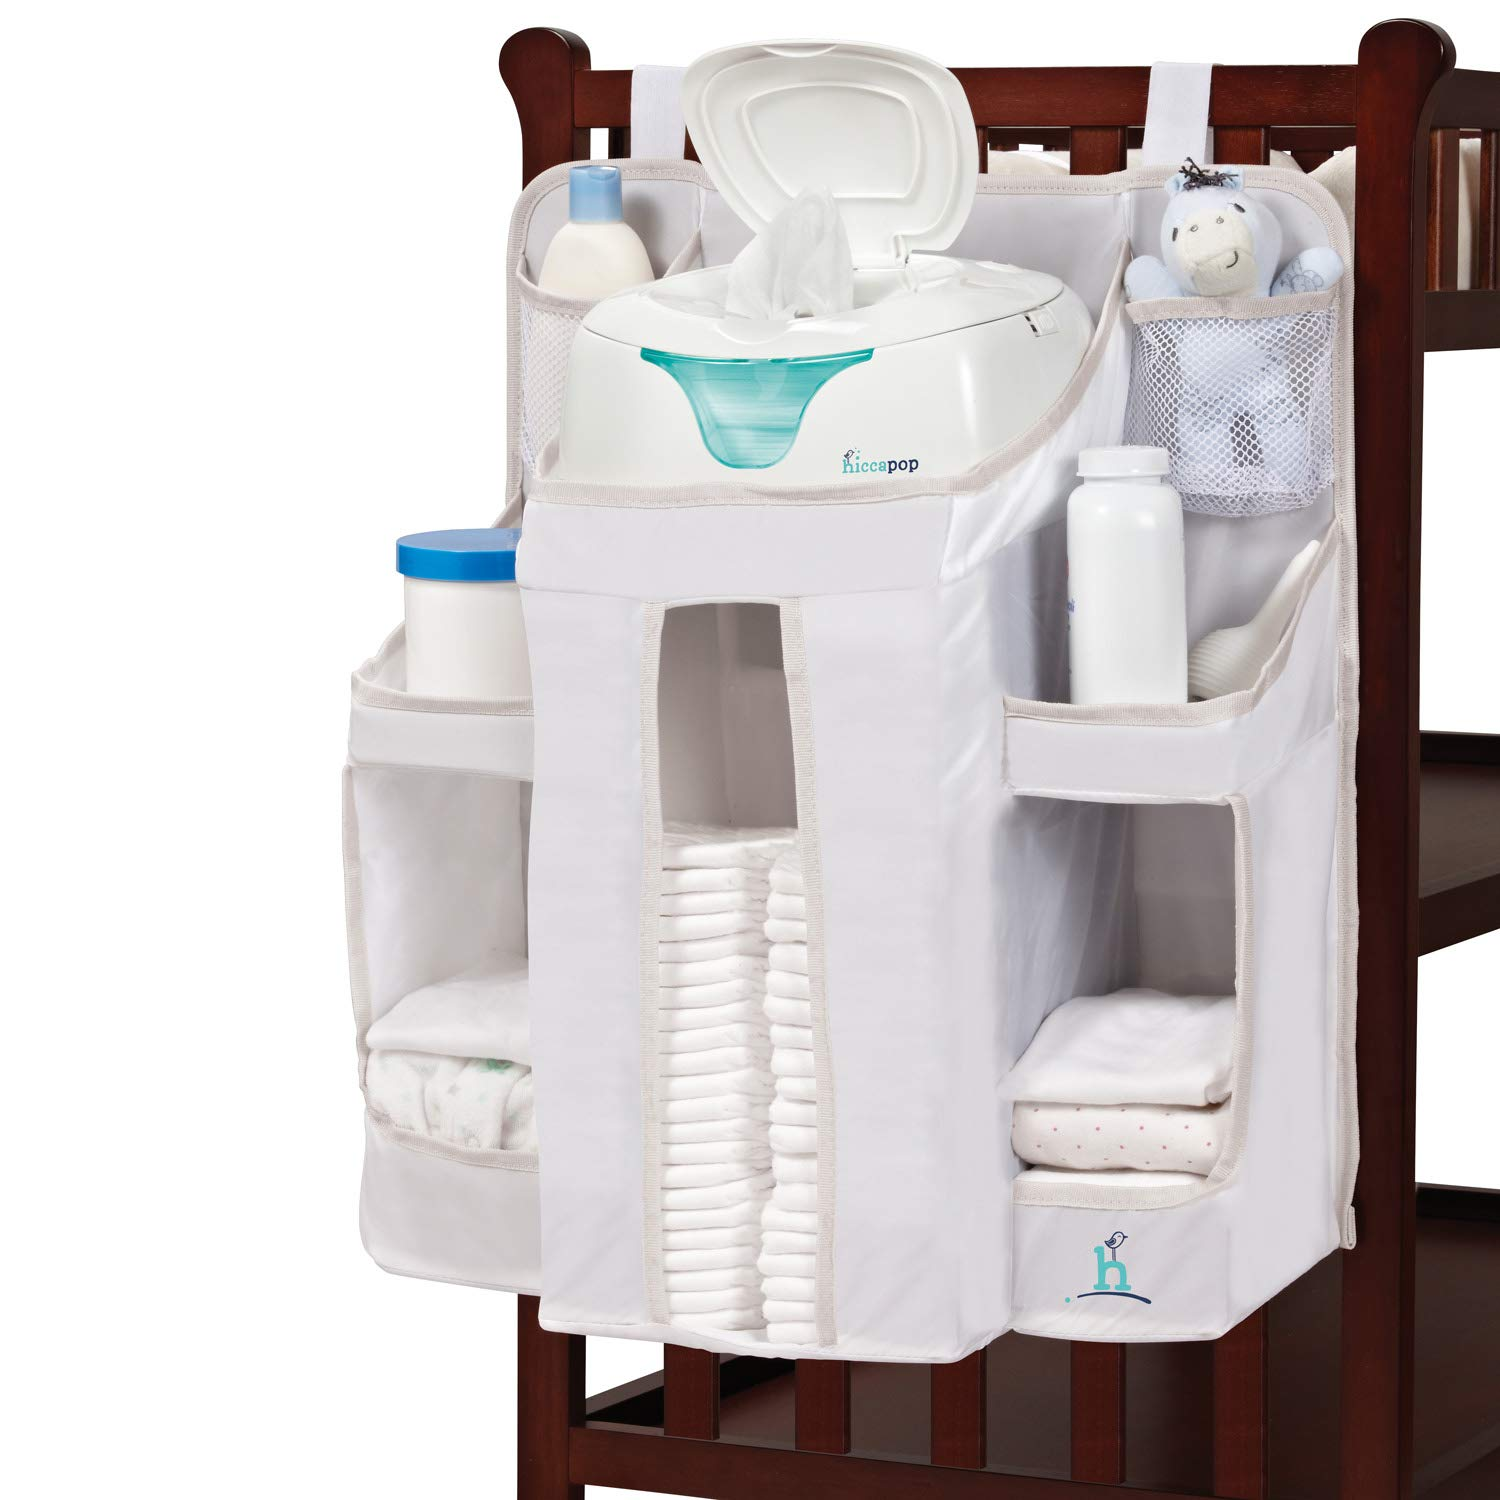 Large special price hiccapop Nursery Organizer and Baby Hanging Caddy Seasonal Wrap Introduction Diape Diaper